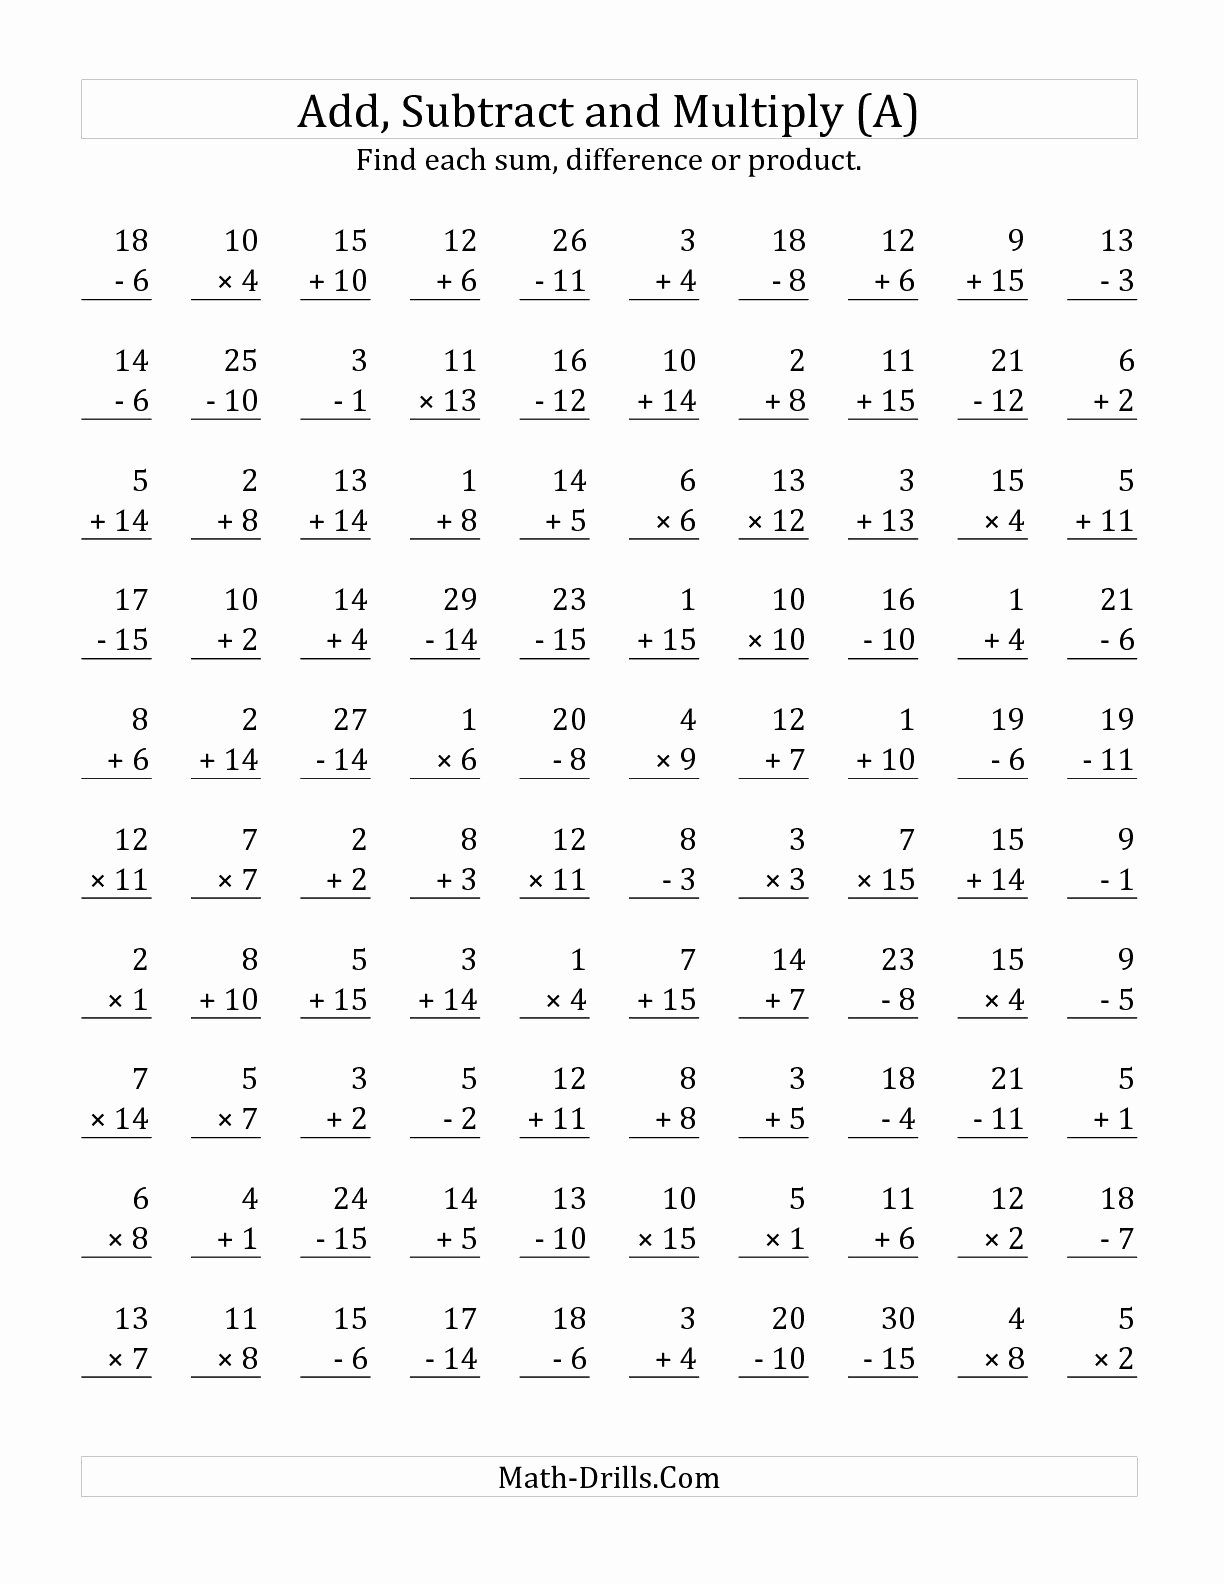 Multiplication Worksheets for 4th Grade top Worksheet Fantasticrth Grade Multiplication Worksheets